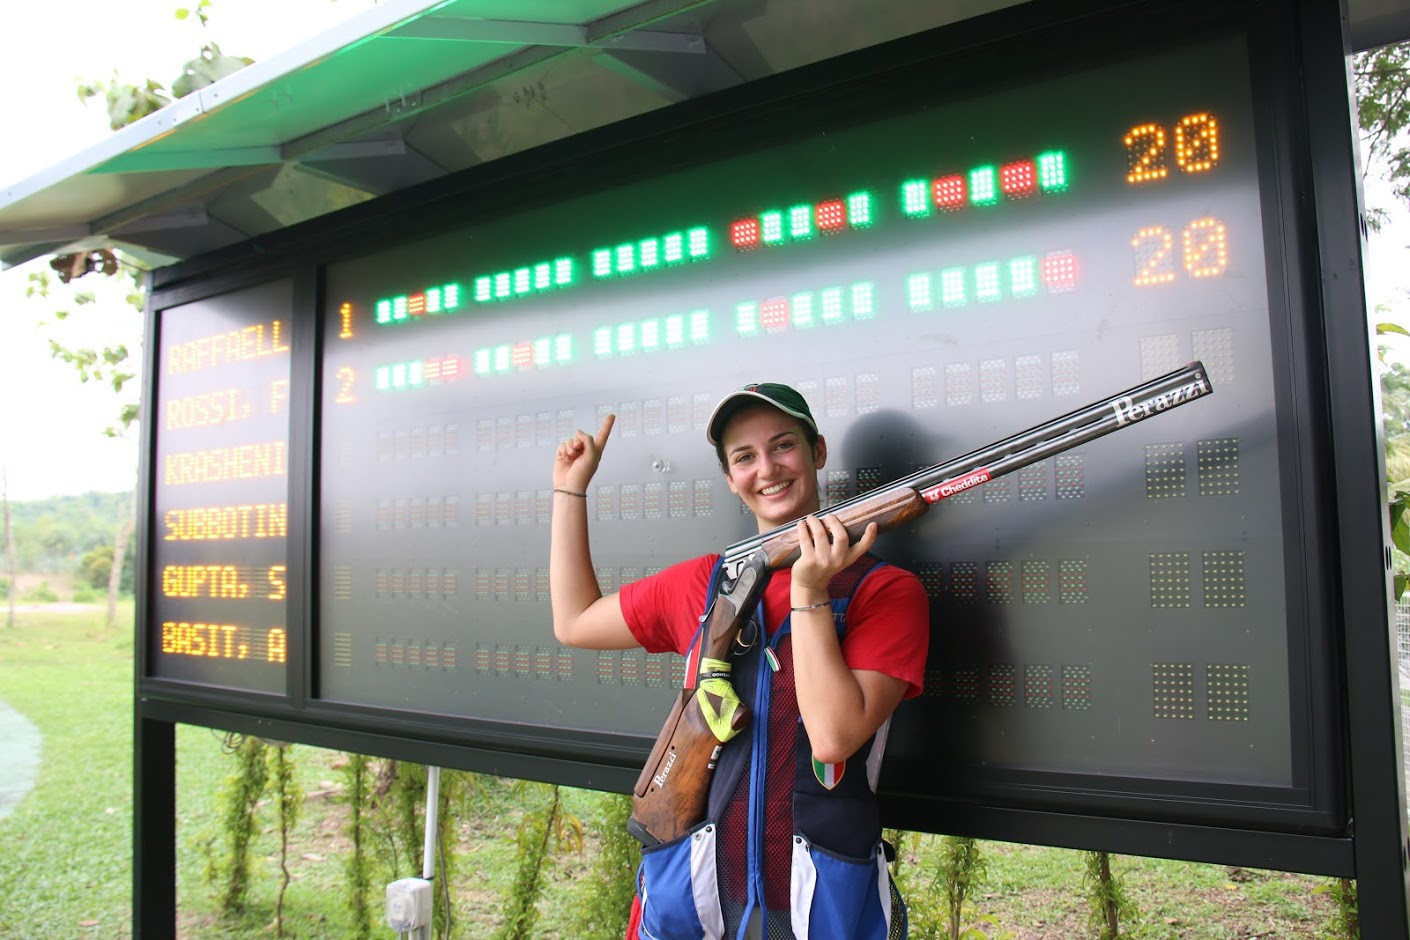 Italy earn double gold on opening day of World University Shooting Championship